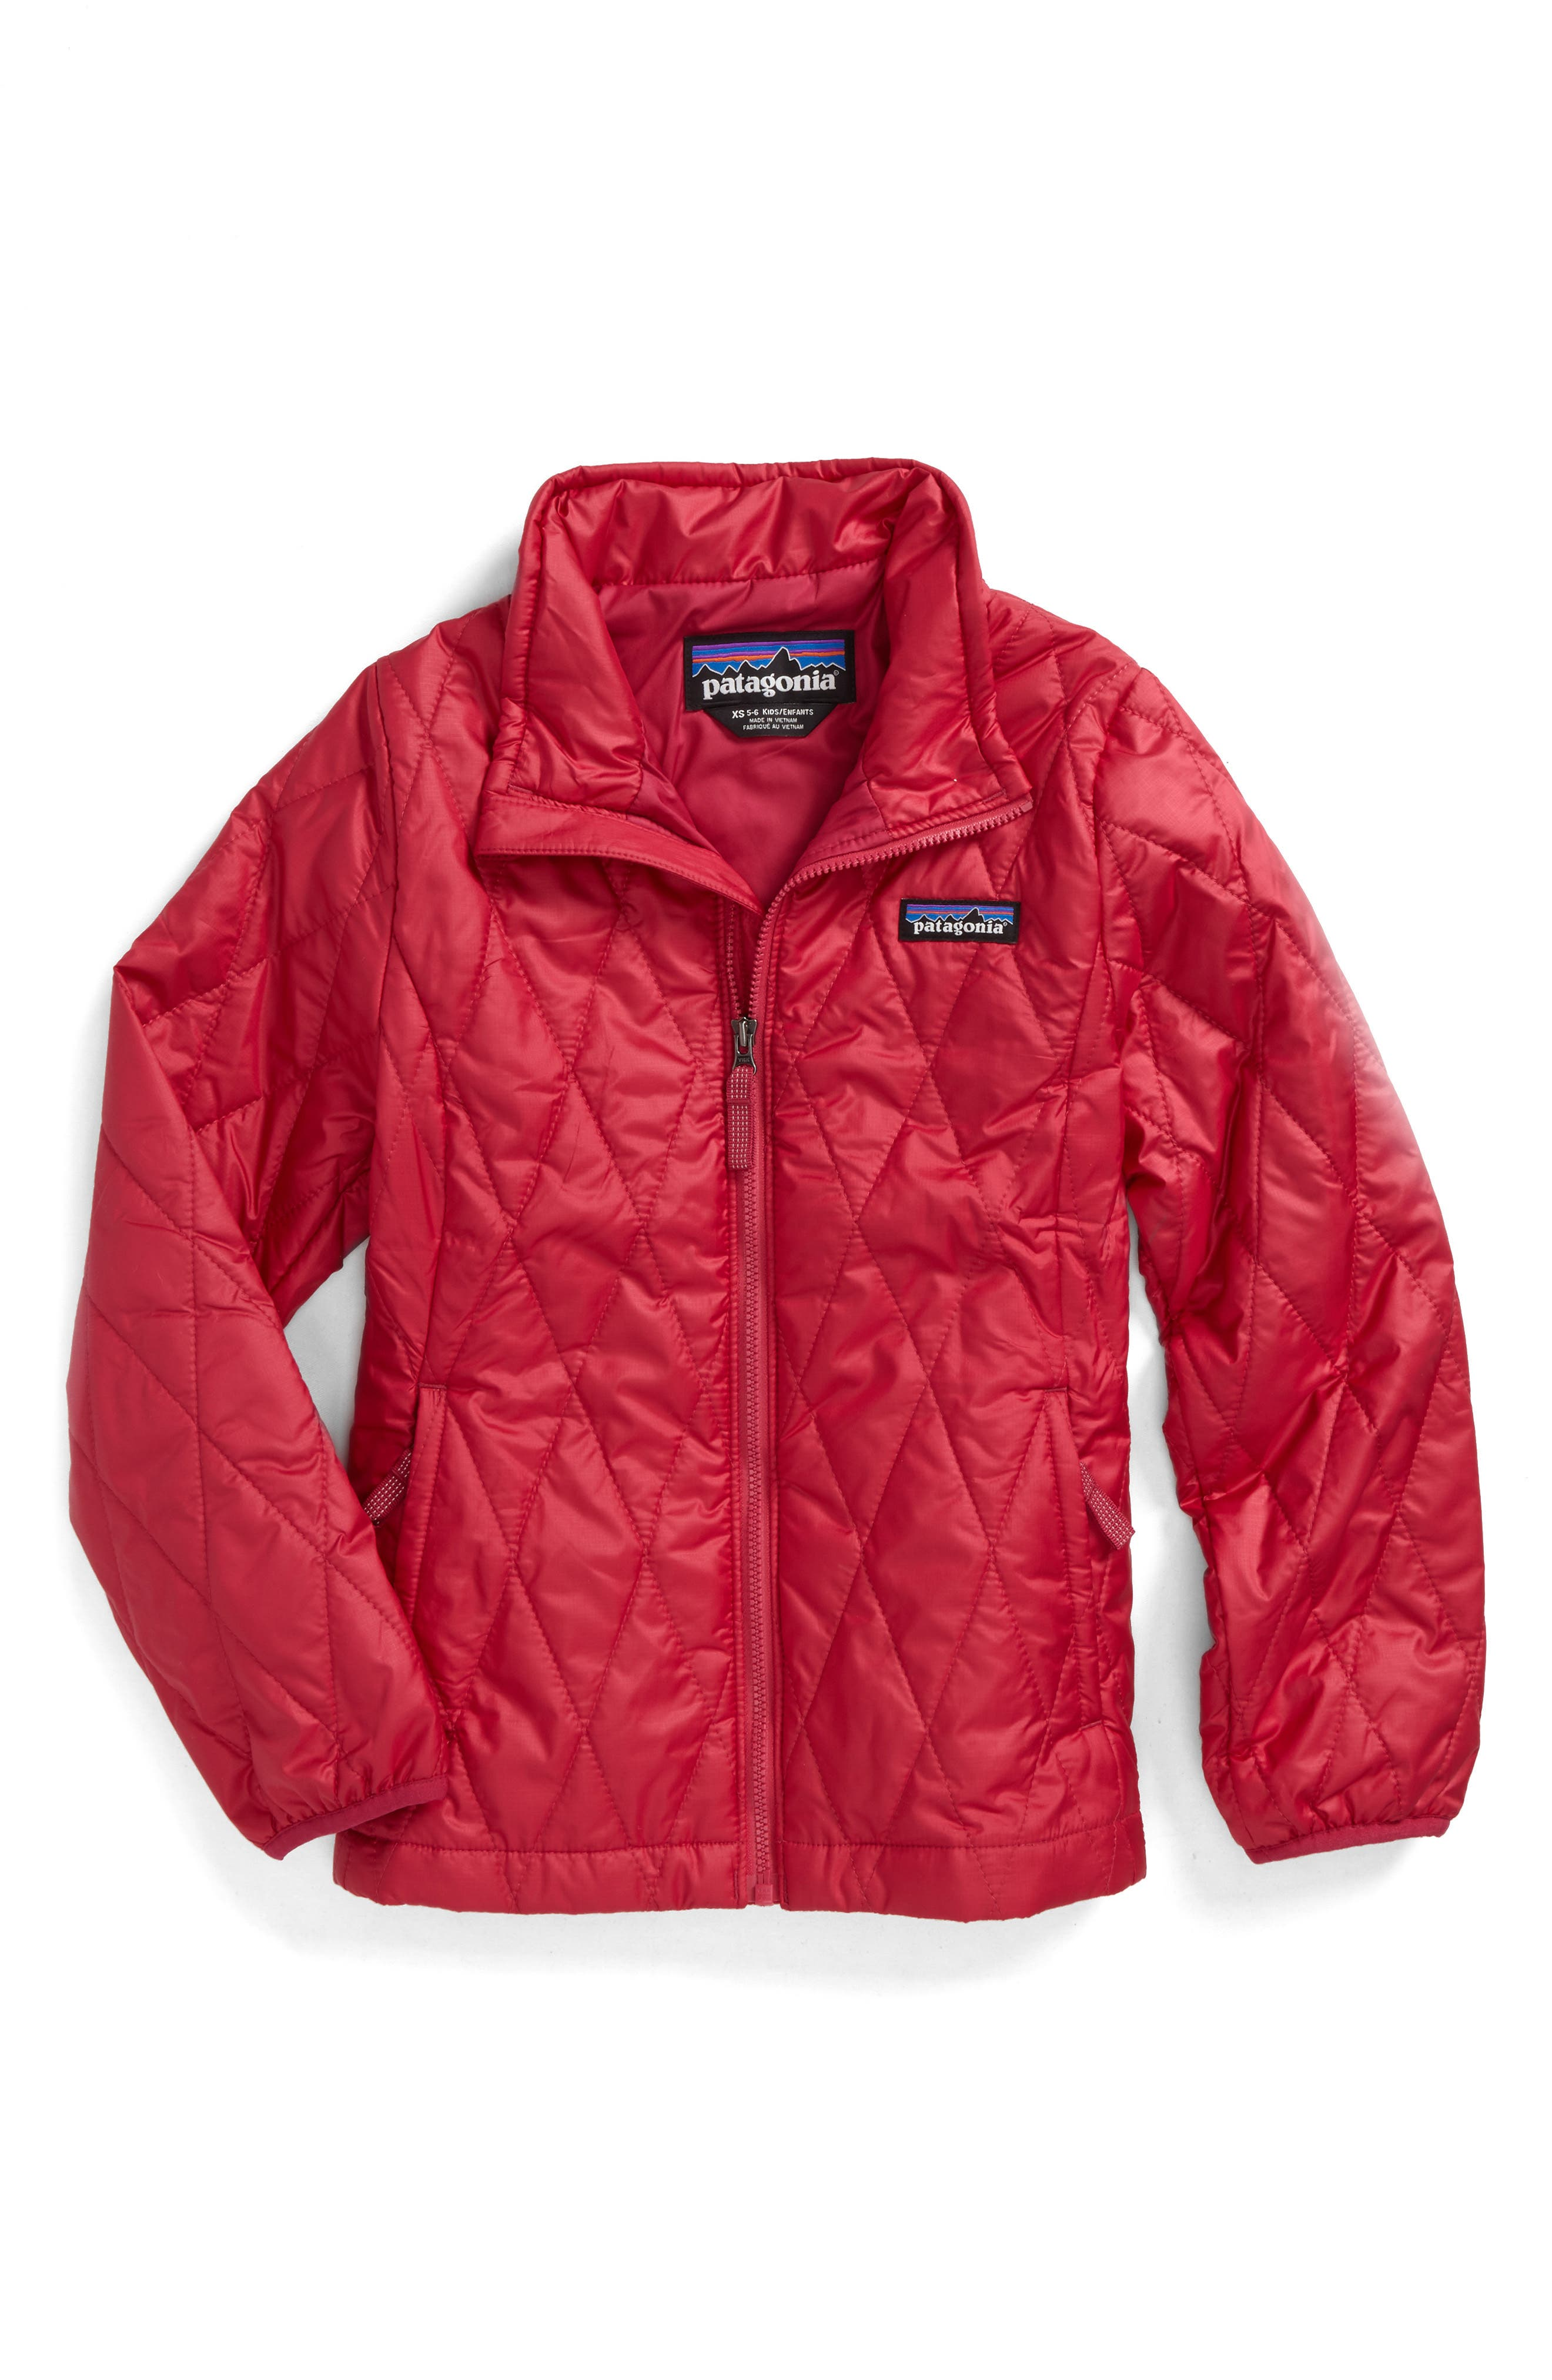 Nano Puff<sup>®</sup> Quilted Water Resistant Jacket,                             Main thumbnail 1, color,                             Craft Pink